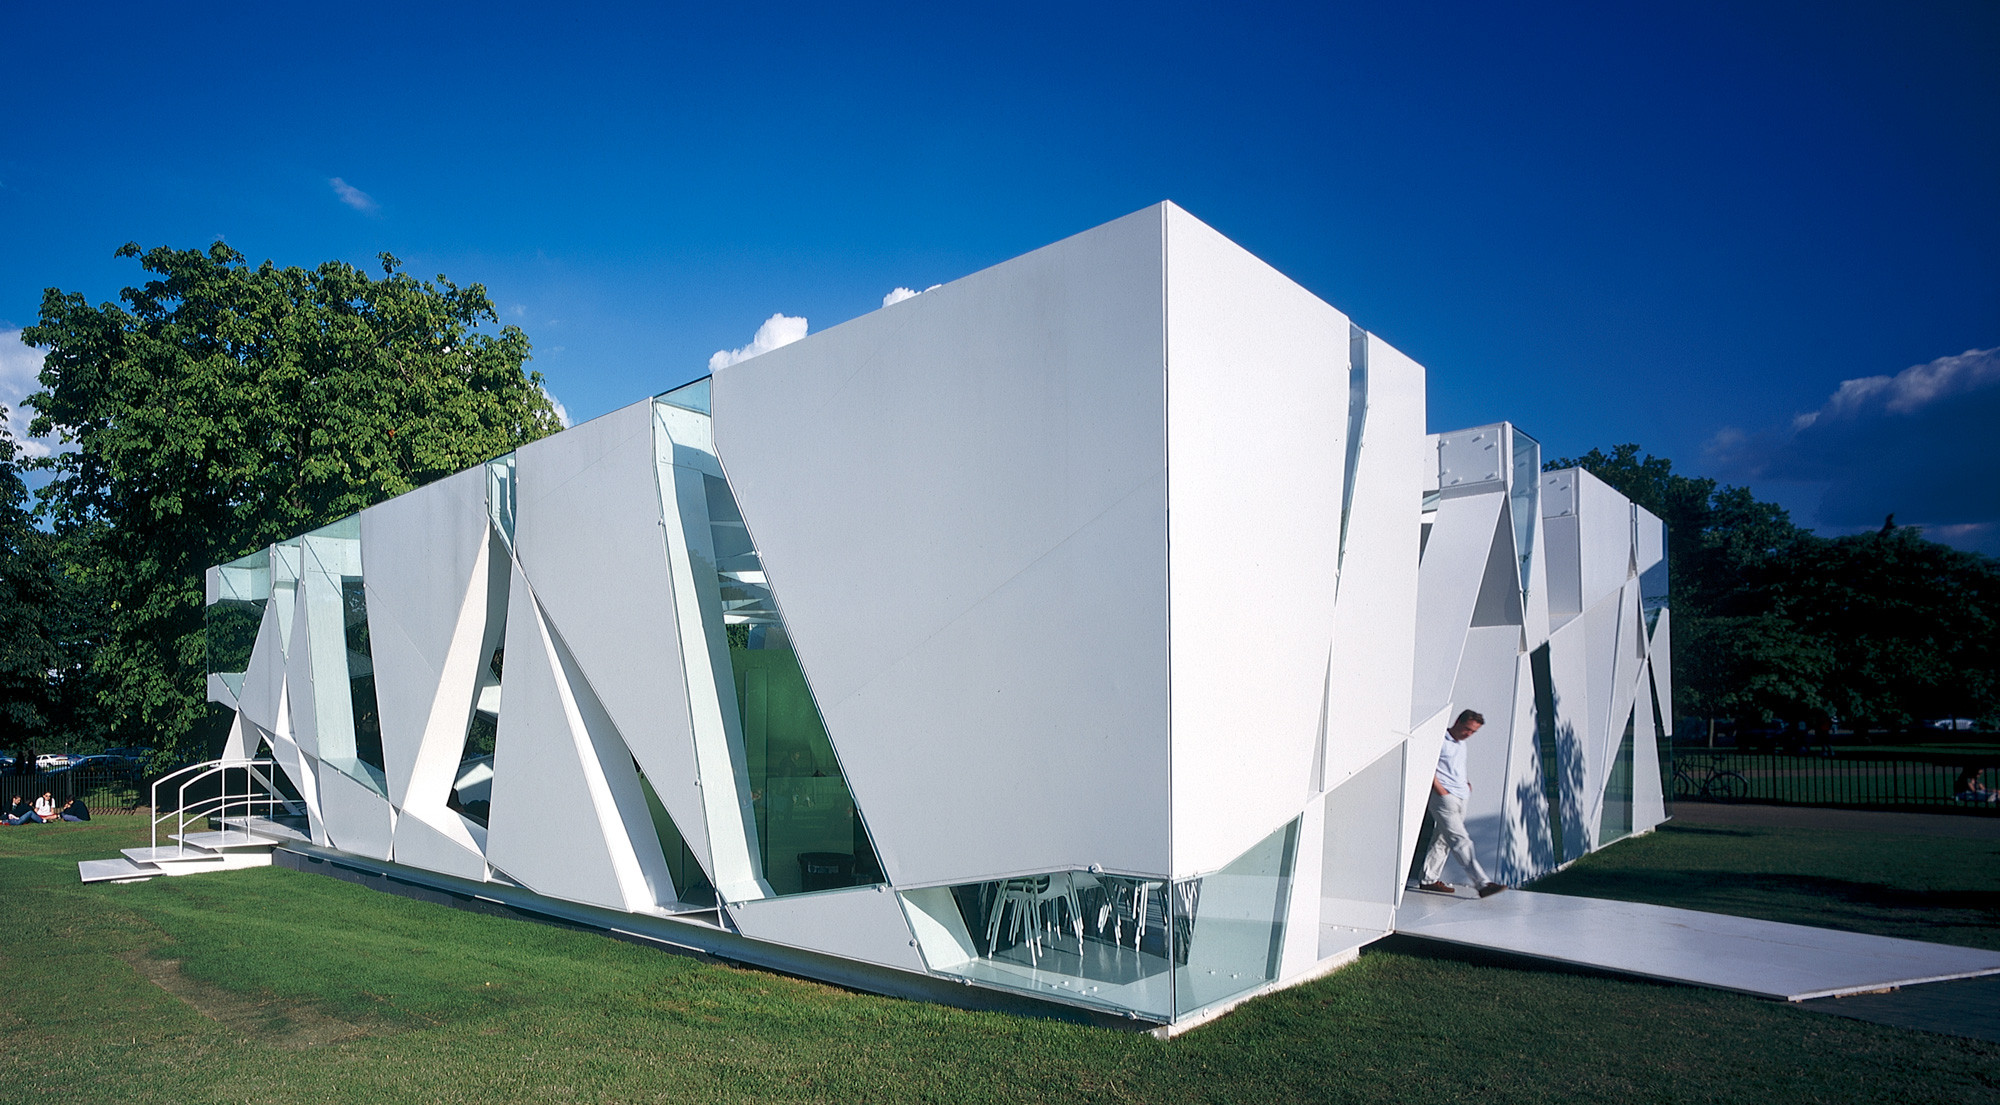 Image 5 of 34 | Serpentine Gallery Pavilion 2002 by Toyo Ito and Cecil Balmond with Arup